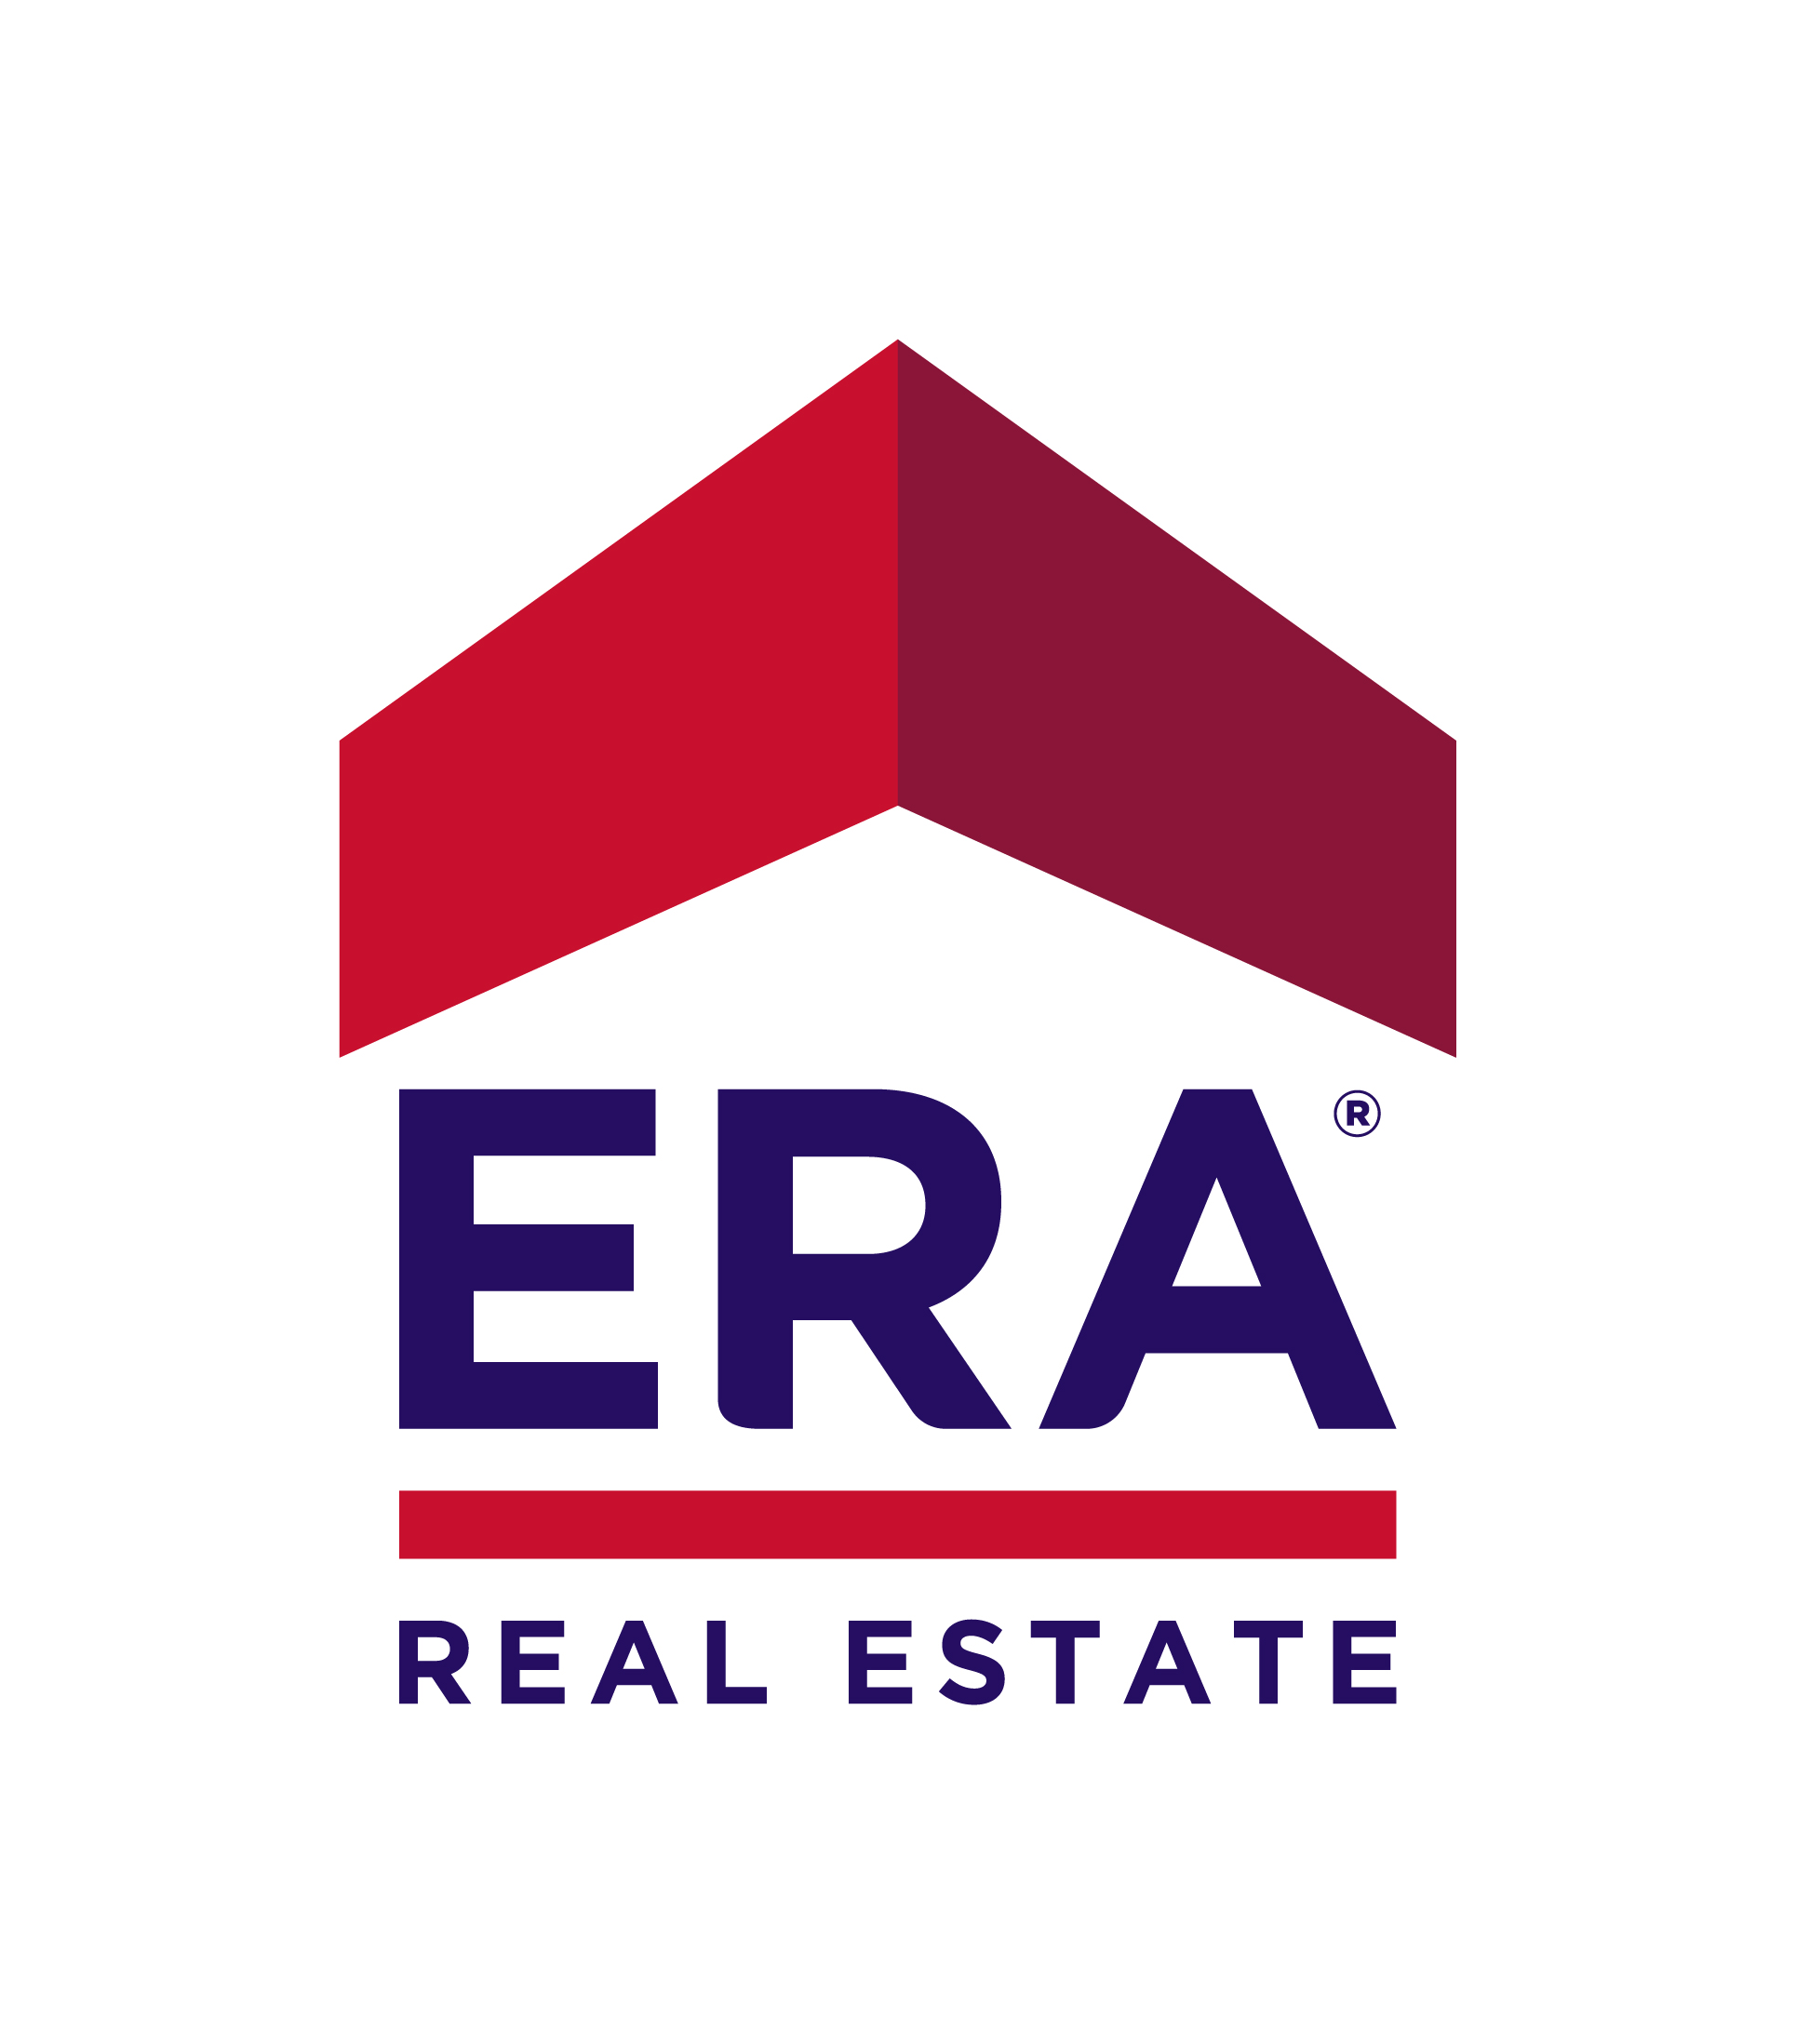 Longtime ERA® Real Estate Affiliates with Nearly 200 Total Agents Renew Franchise Agreements